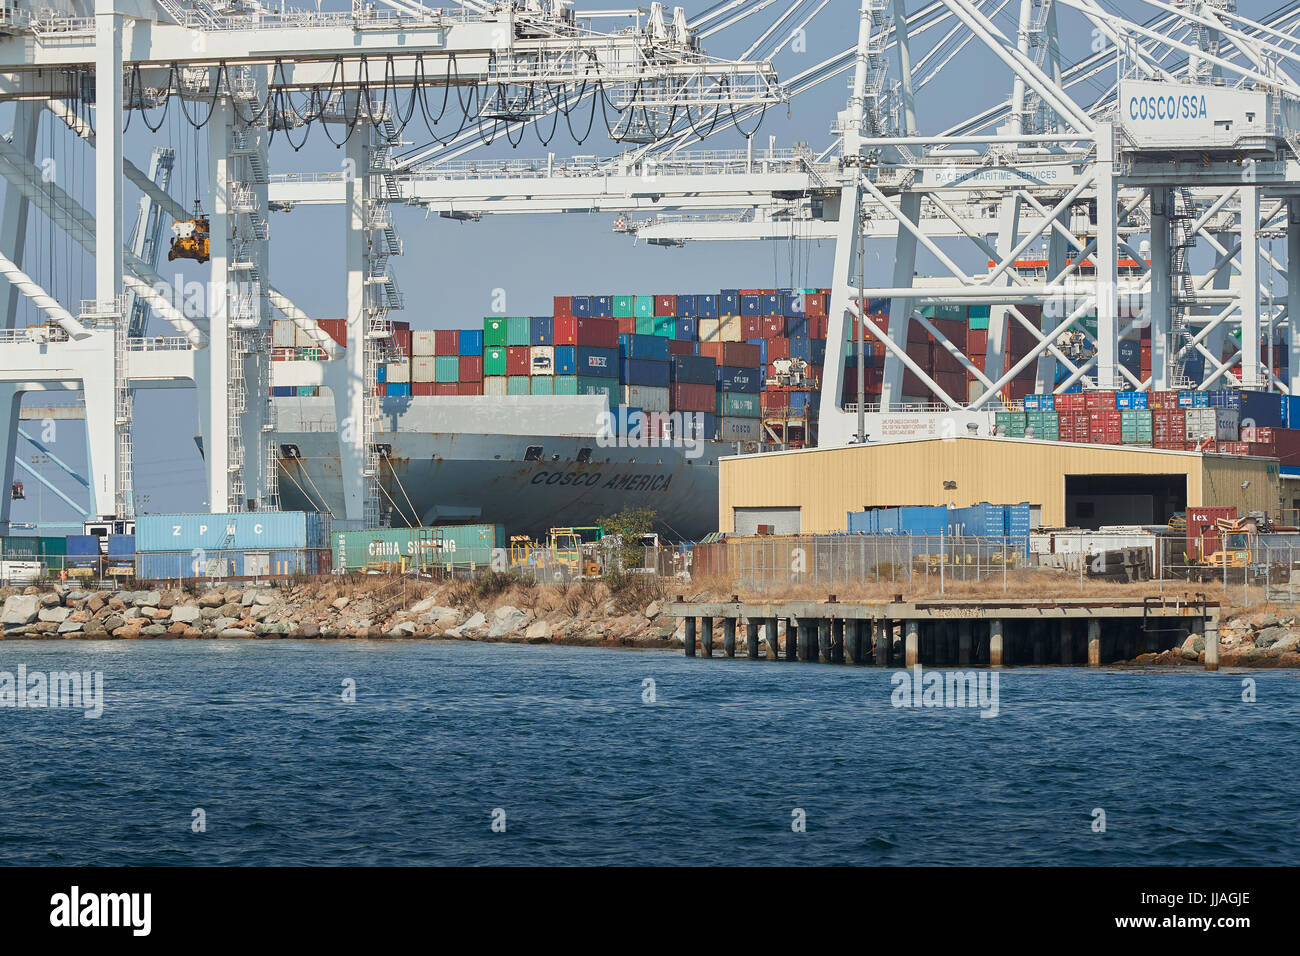 COSCO SHIPPING Container Ship, COSCO AMERICA, Being Unloaded In The